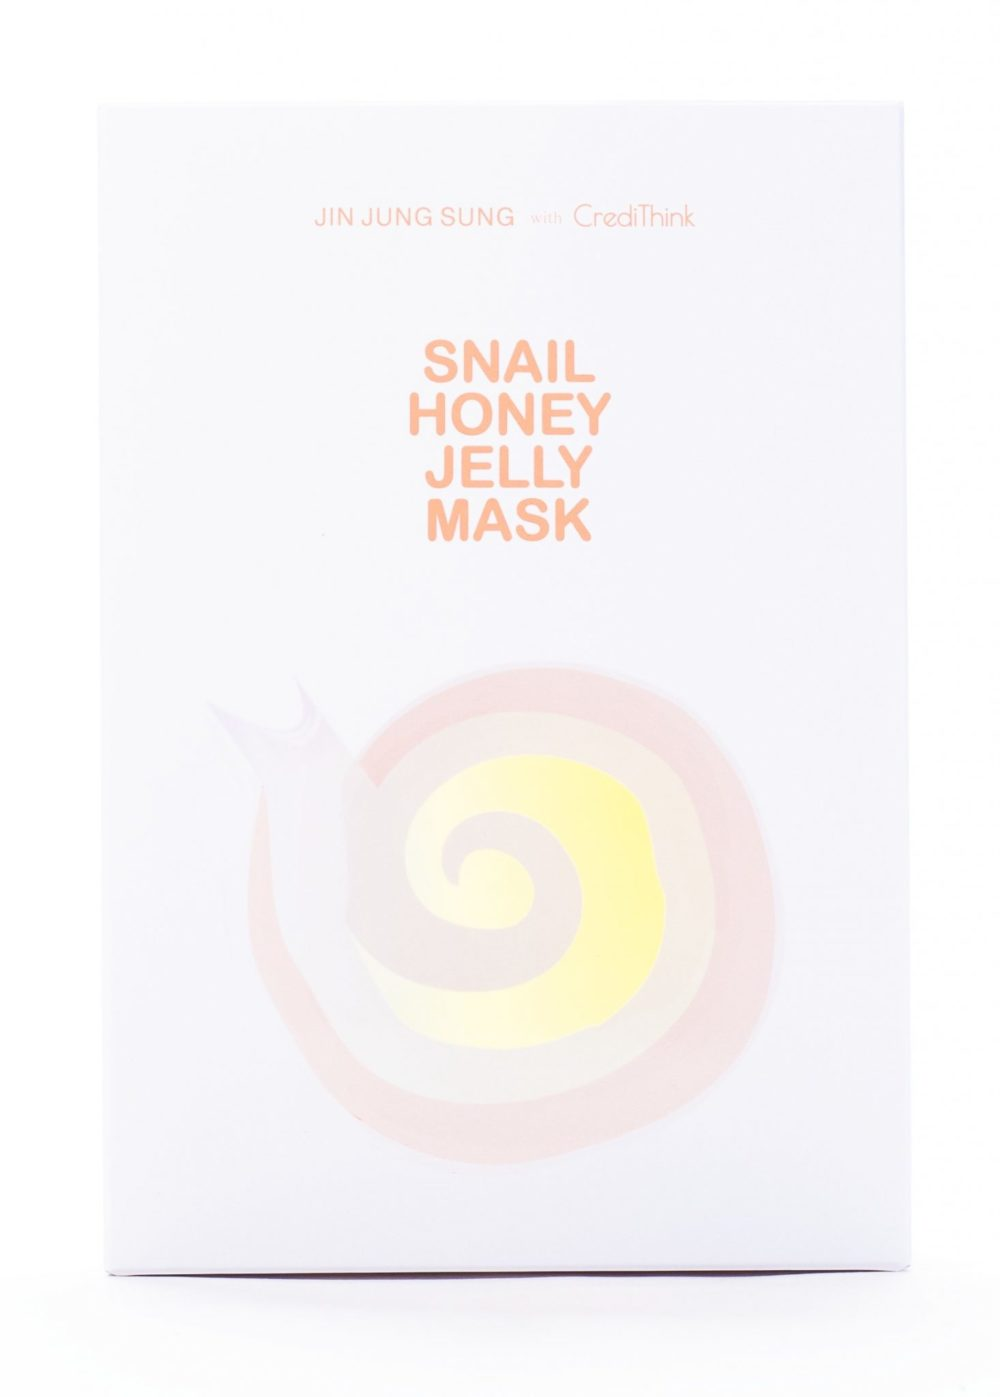 [Jin Jung Sung x CrediThink] Snail Honey Jelly Mask Box (Front)